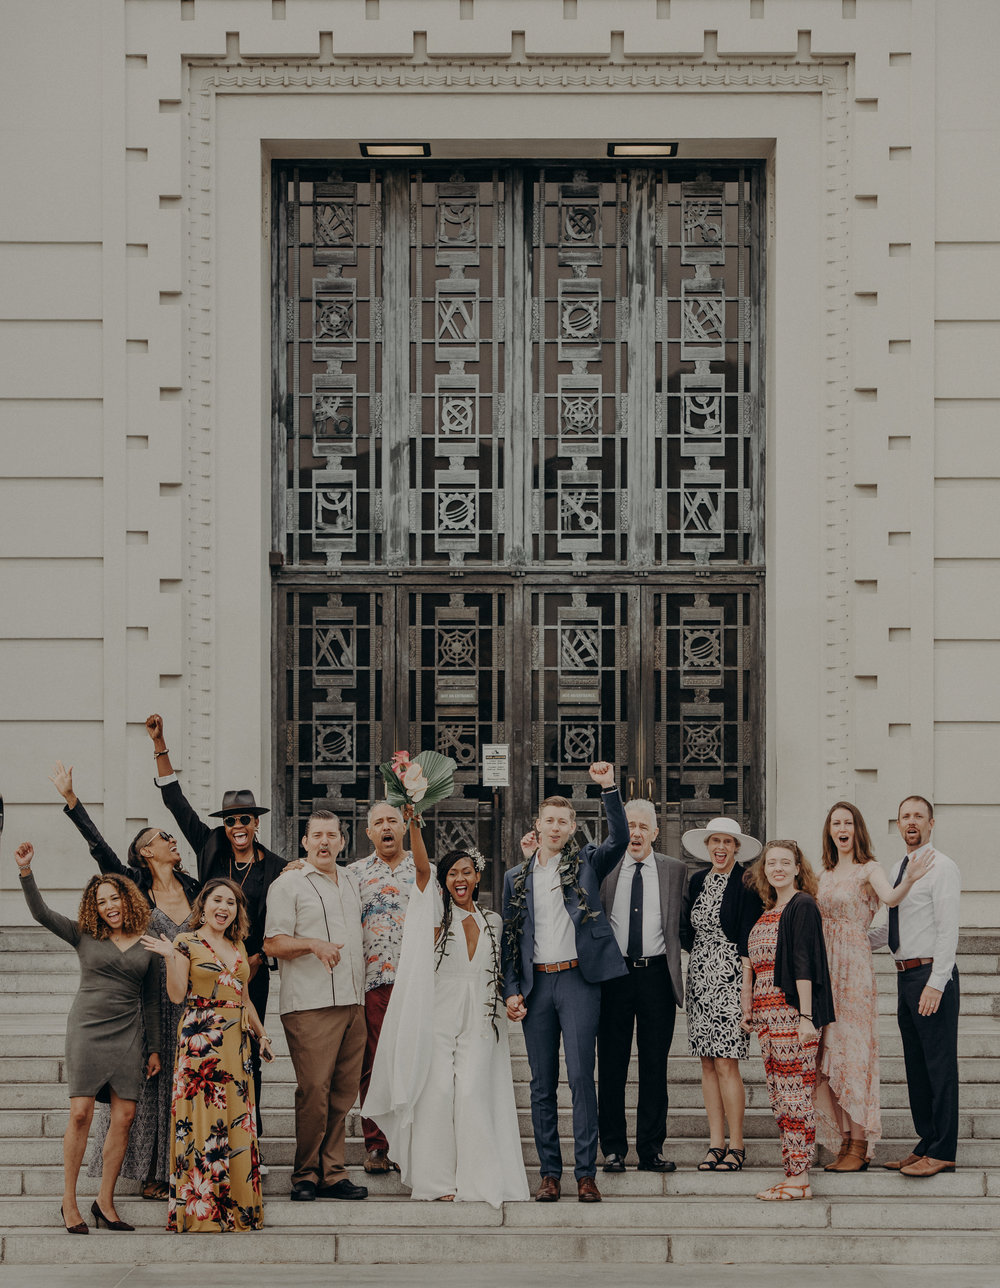 Los Angeles Wedding Photographer - Griffith Observatory Elopement - Long Beach wedding photo - IsaiahAndTaylor.com-036.jpg